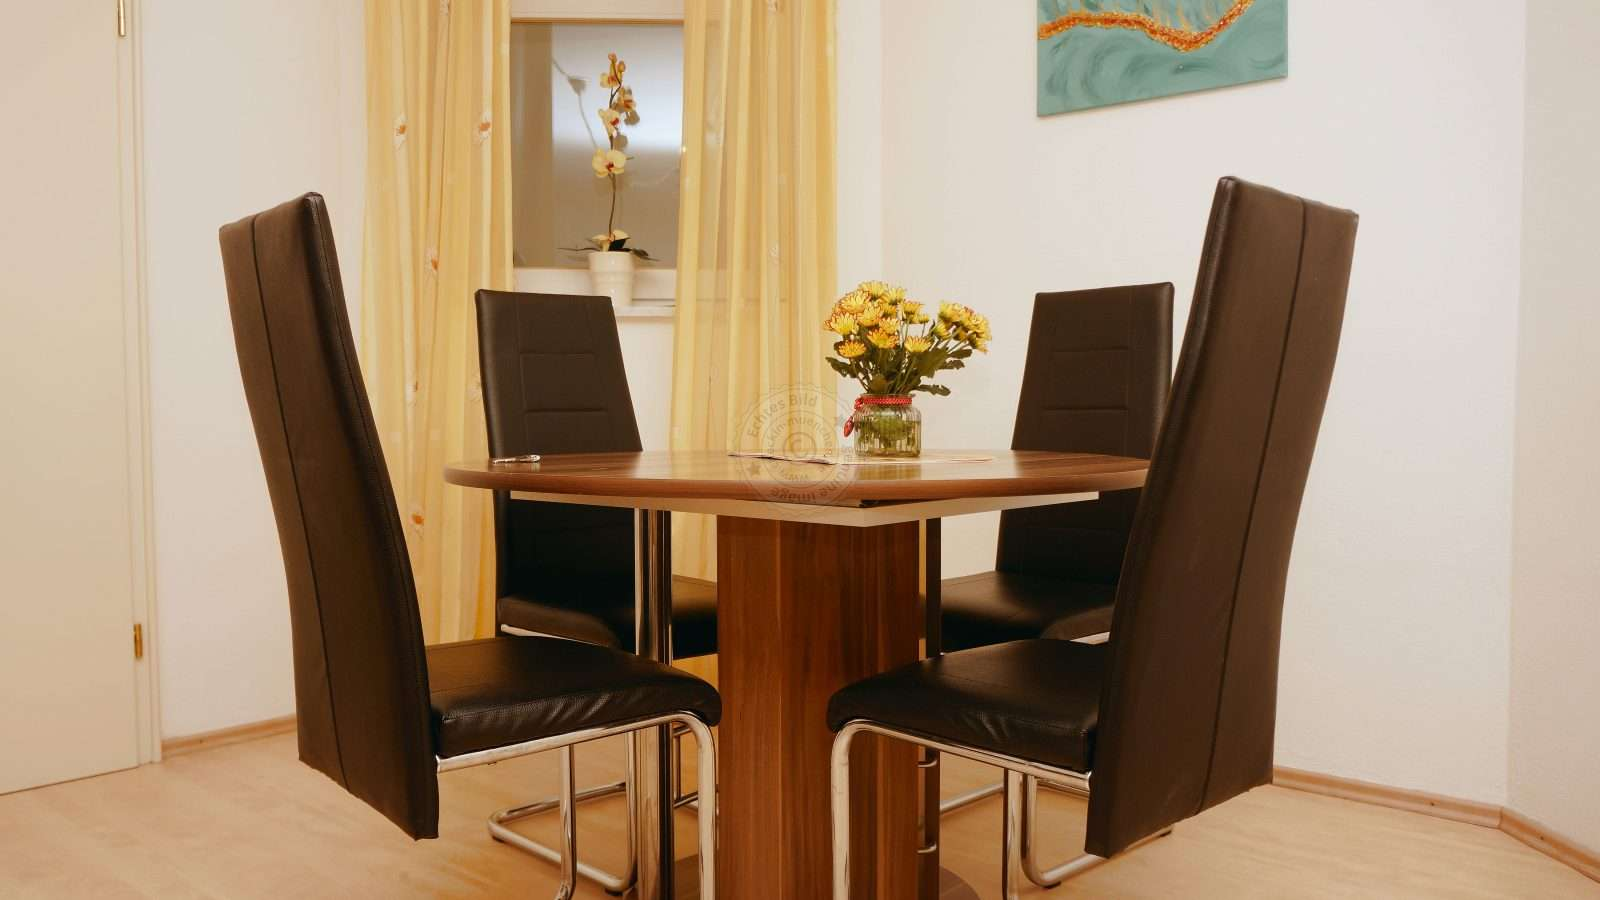 Dinette in the living room